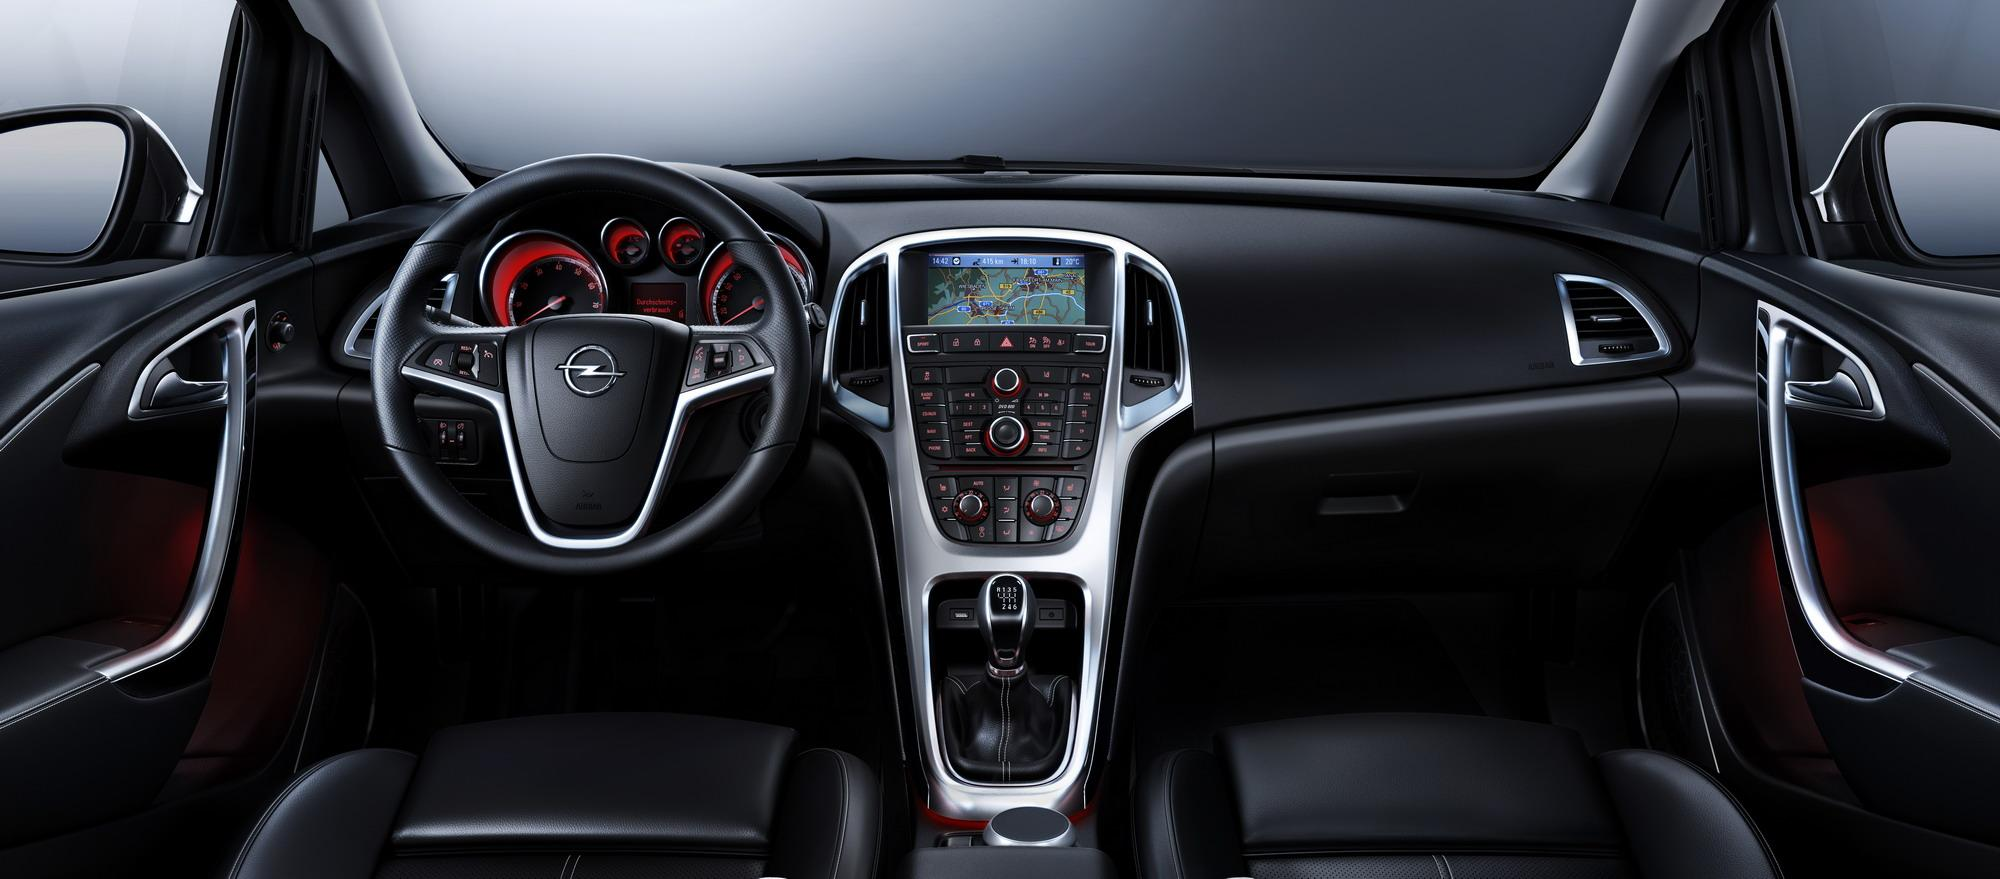 2010 Opel Astra Reveales Its Interior Picture Top Speed